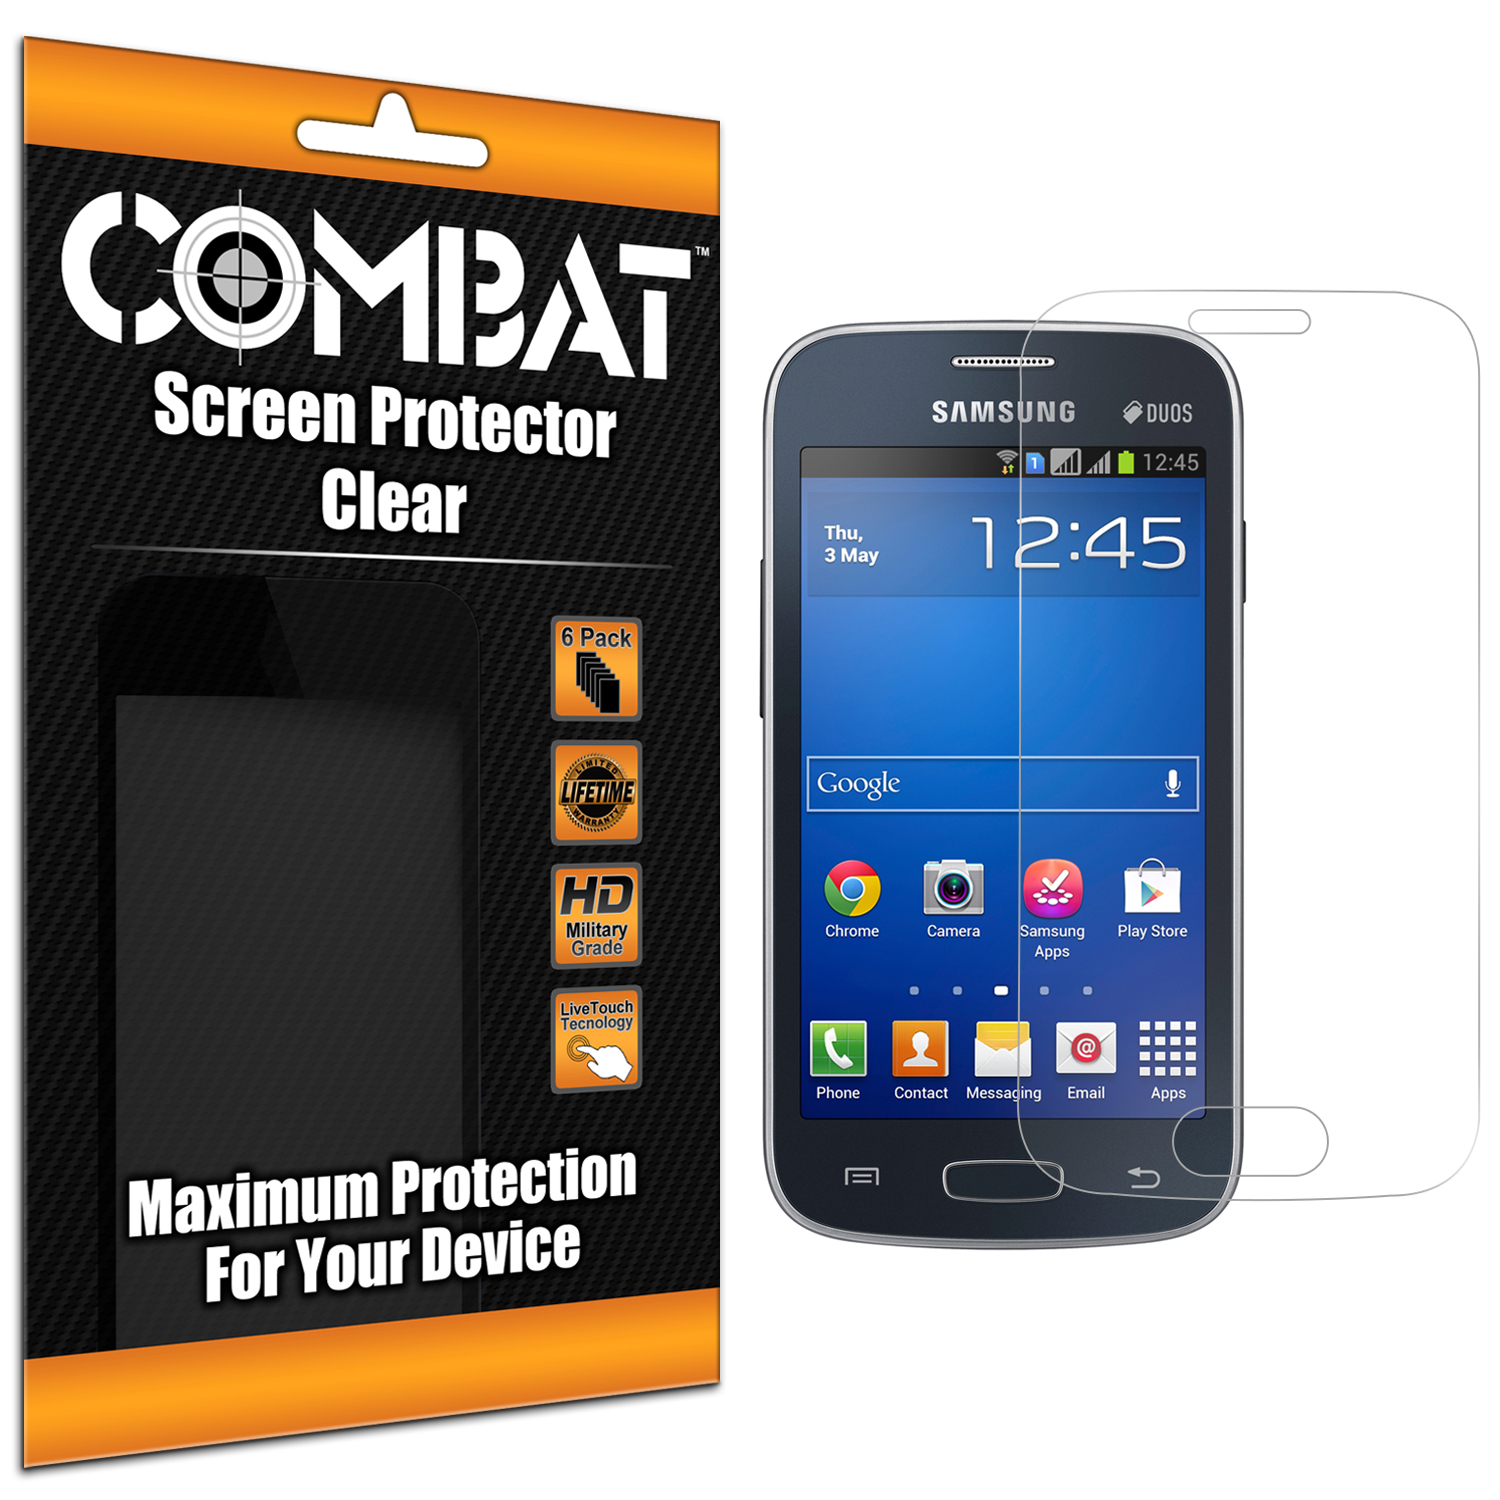 Samsung Galaxy Star 2 Combat 6 Pack HD Clear Screen Protector